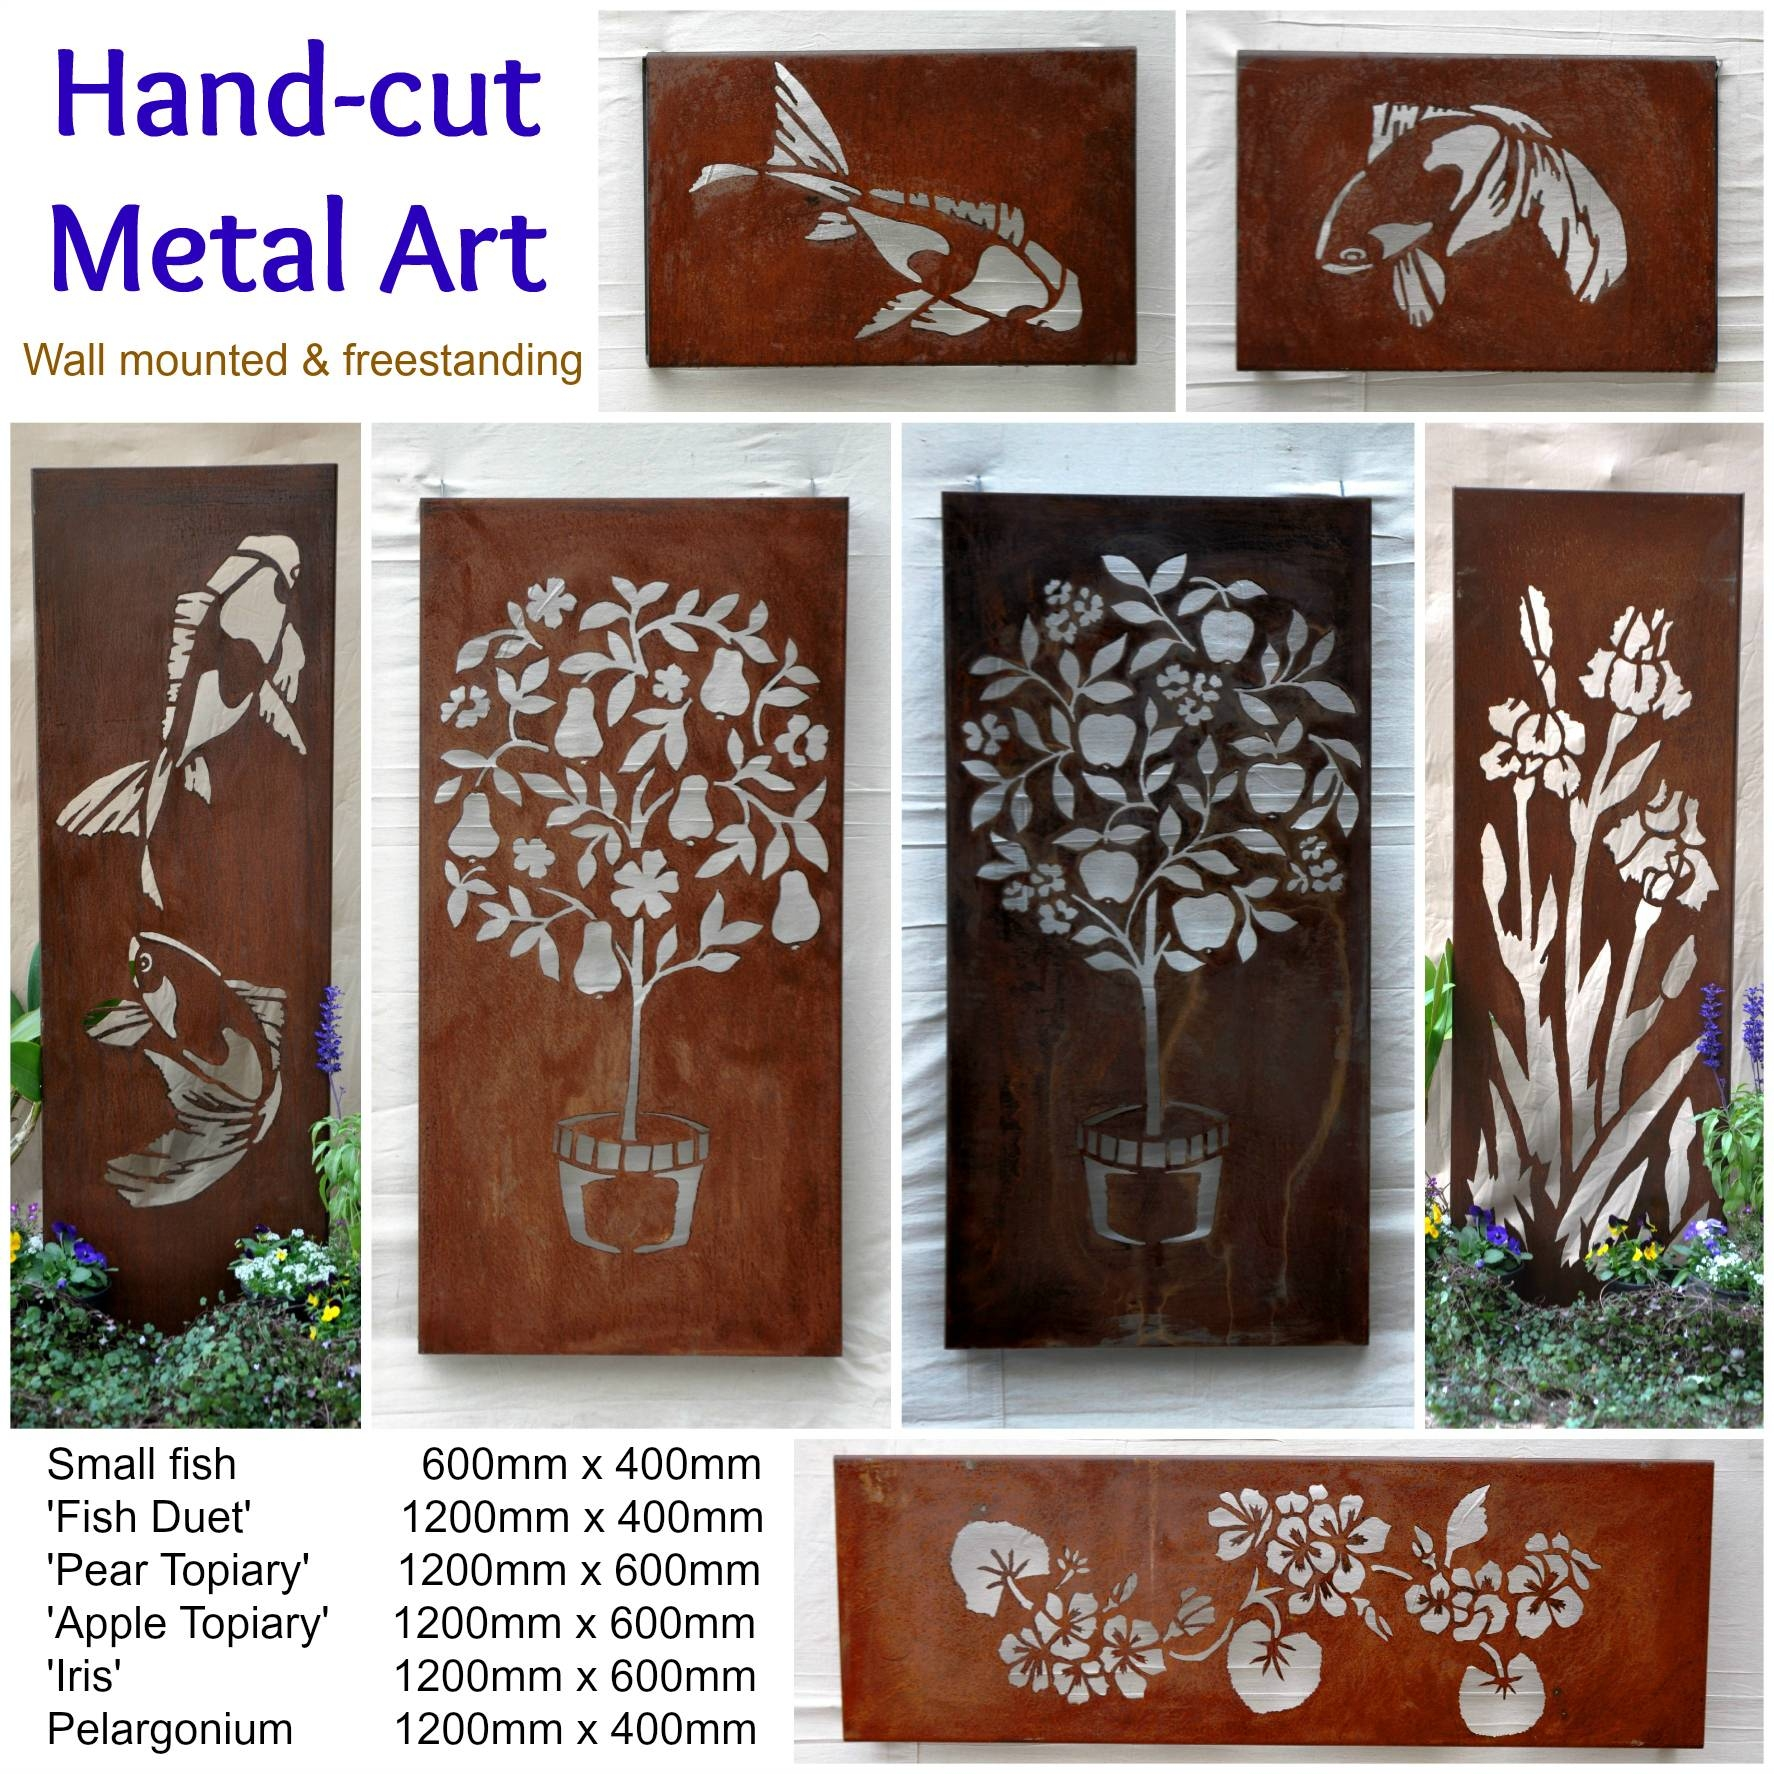 Wall Art Decor: Unique Metal Australian Wall Art Free Standing Pertaining To Most Popular Unique Metal Wall Art (View 9 of 20)